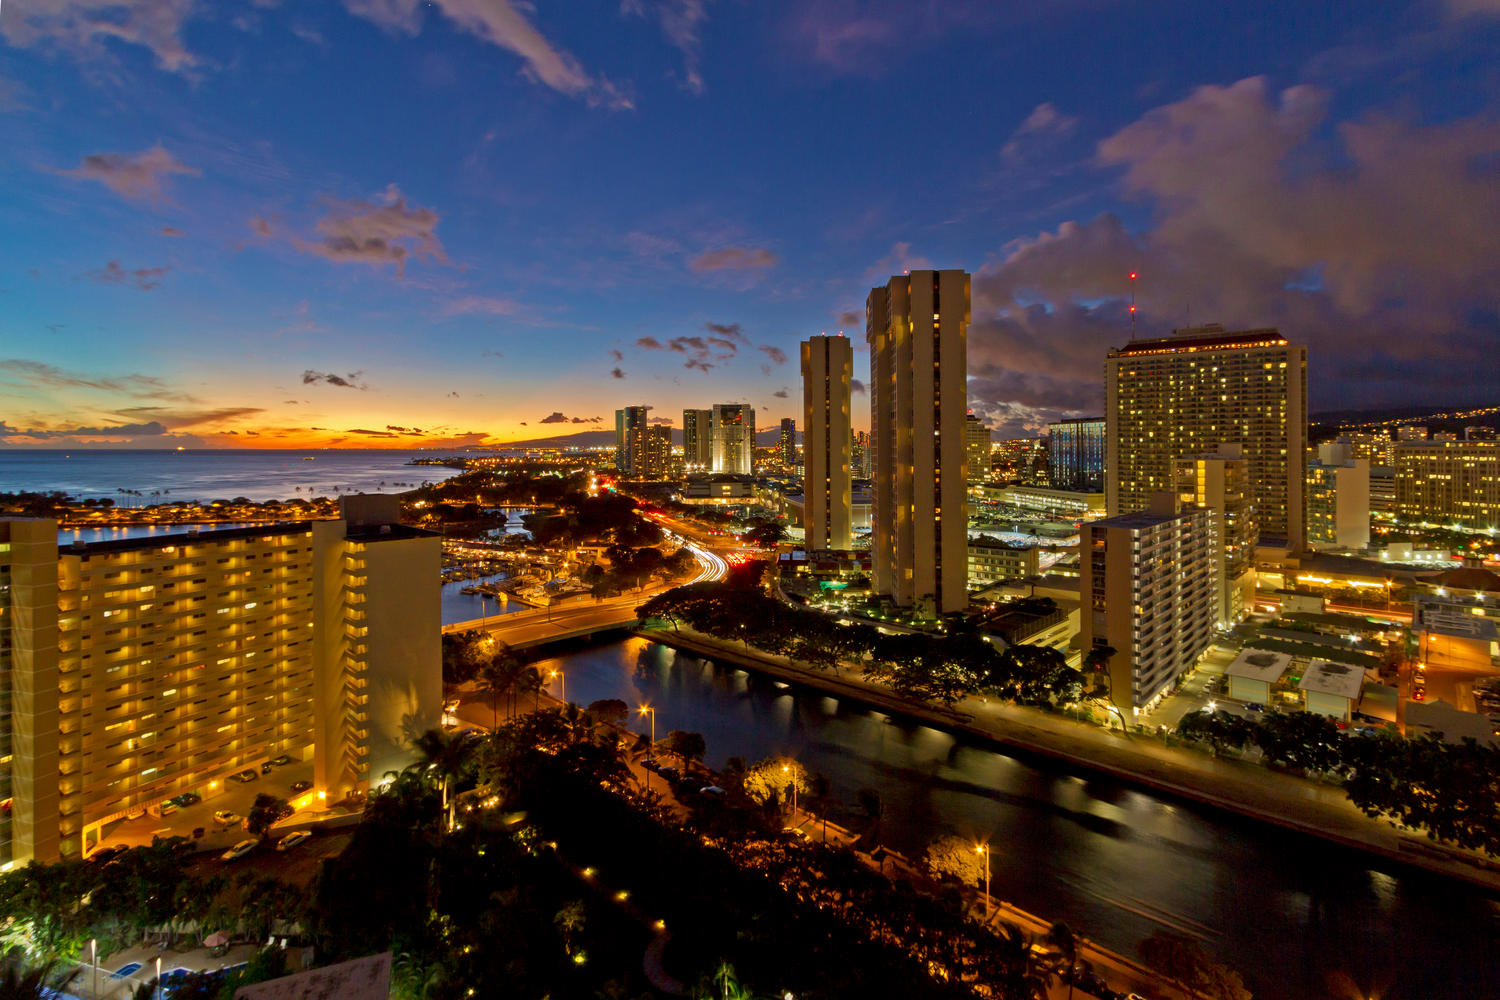 Condominium for Sale at Ultra Modern Luxury Home in the Sky The Watermark 1551 Ala Wai Boulevard #2105 Honolulu, Hawaii 96815 United States